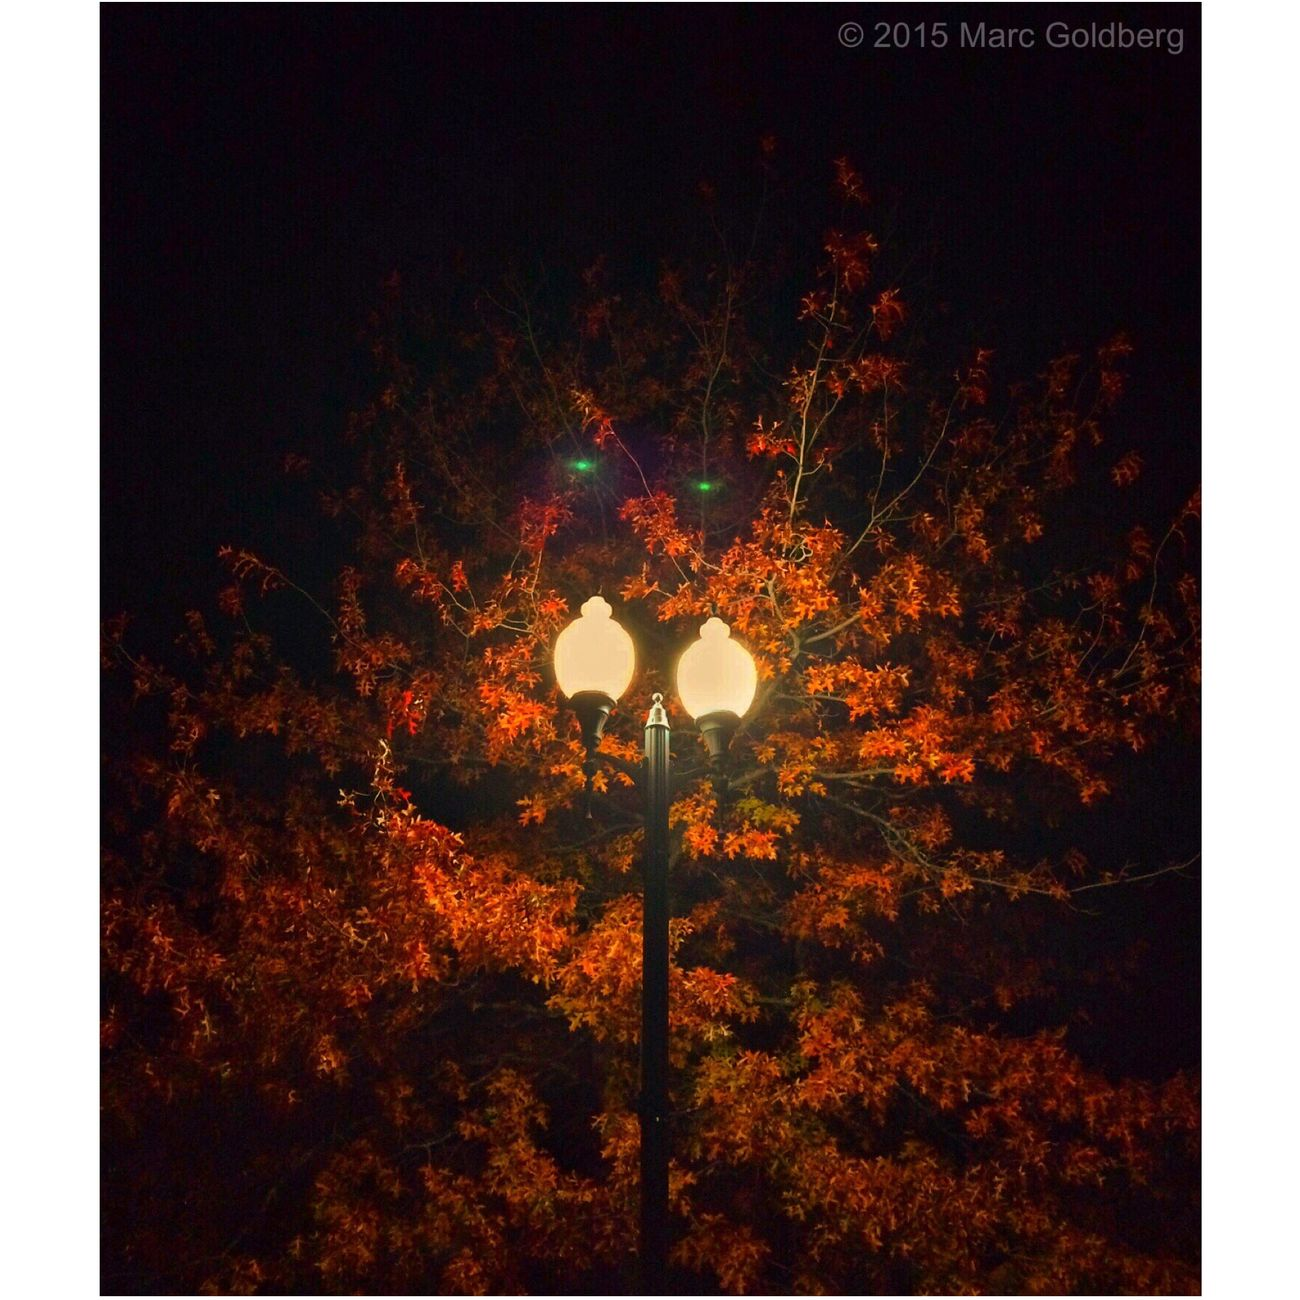 """Night Eyes,"" Reilly-Mumford Park, Sherrill, New York, 10/31/15 Halloween Night Light Night Lights Lens Flare Fall Fall Beauty Autumn Autumn Colors Trees"